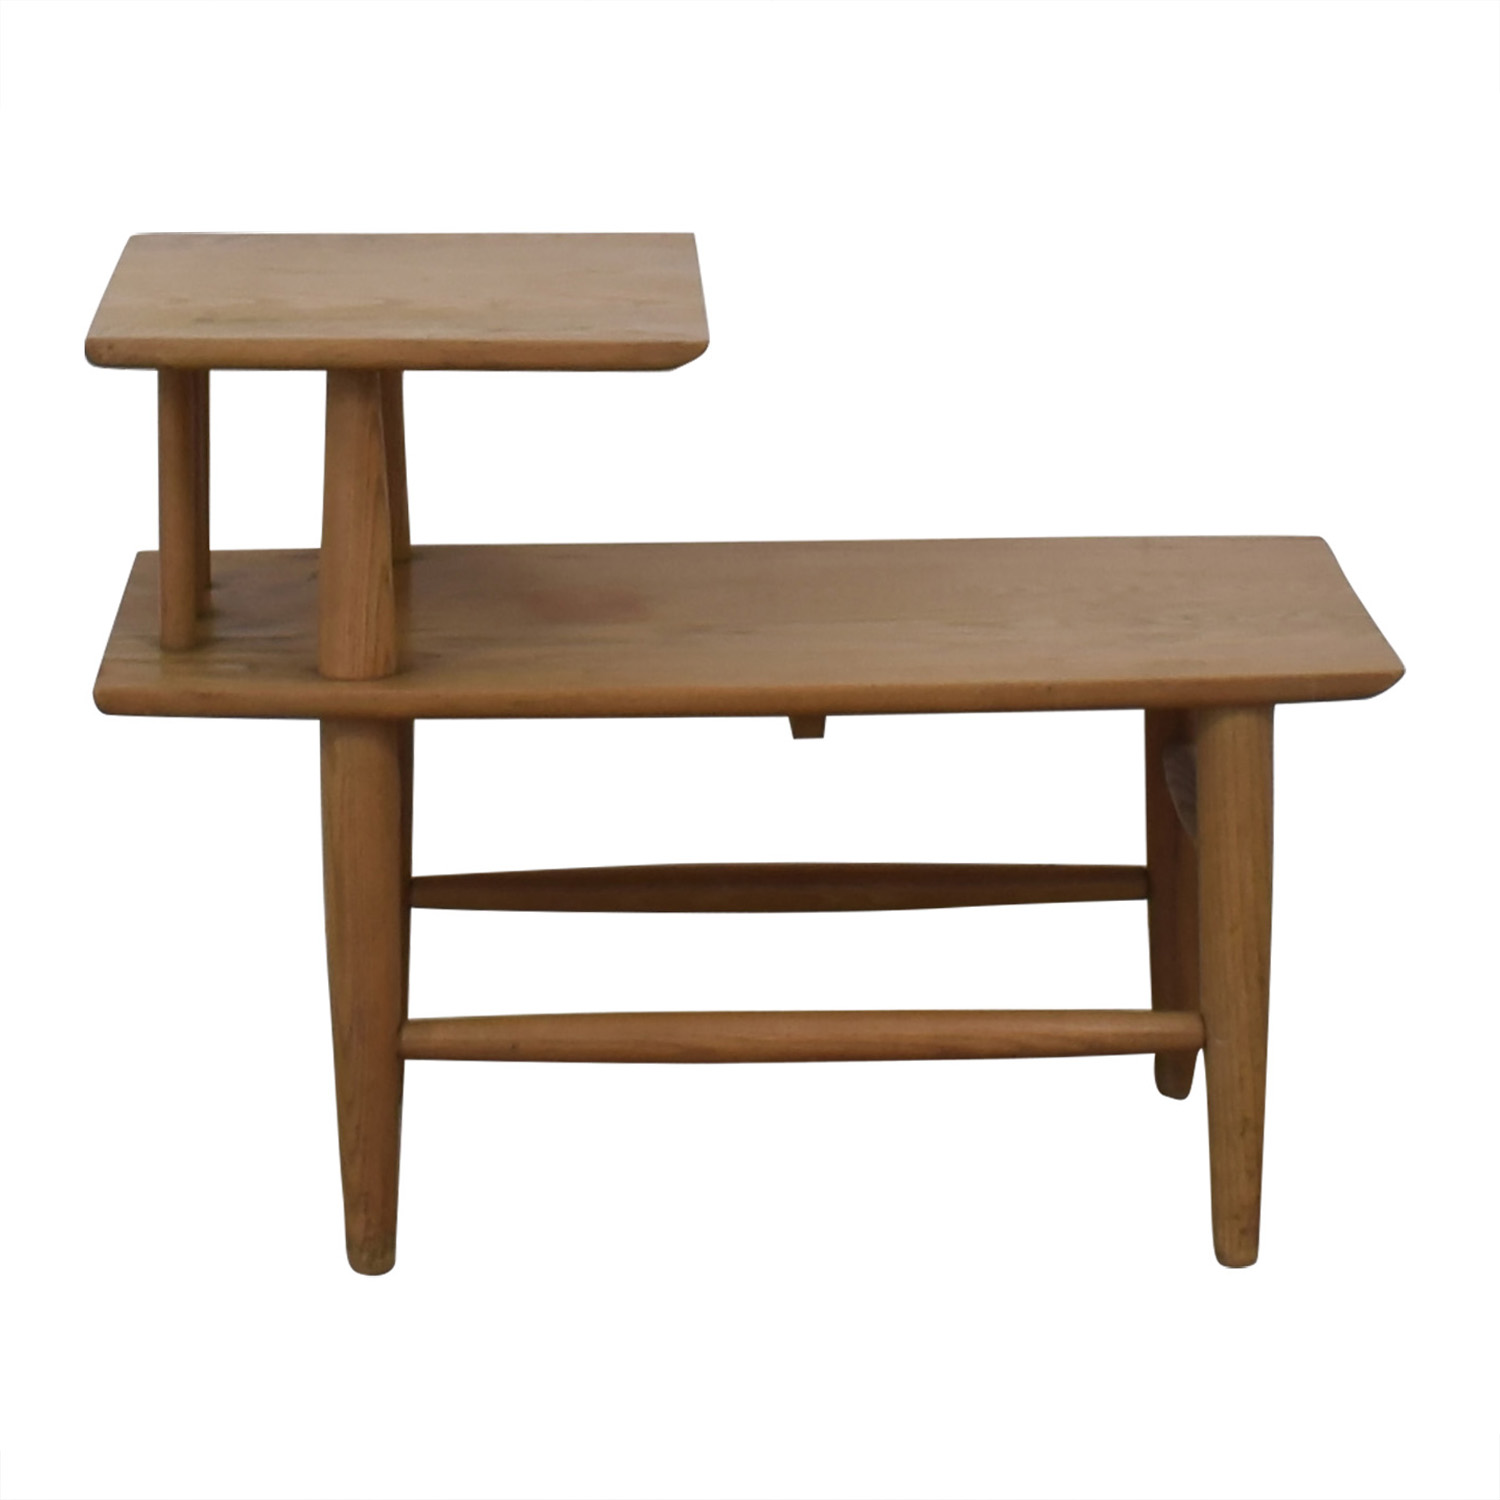 90 Off Natural Wood Two Level Coffee Table Tables